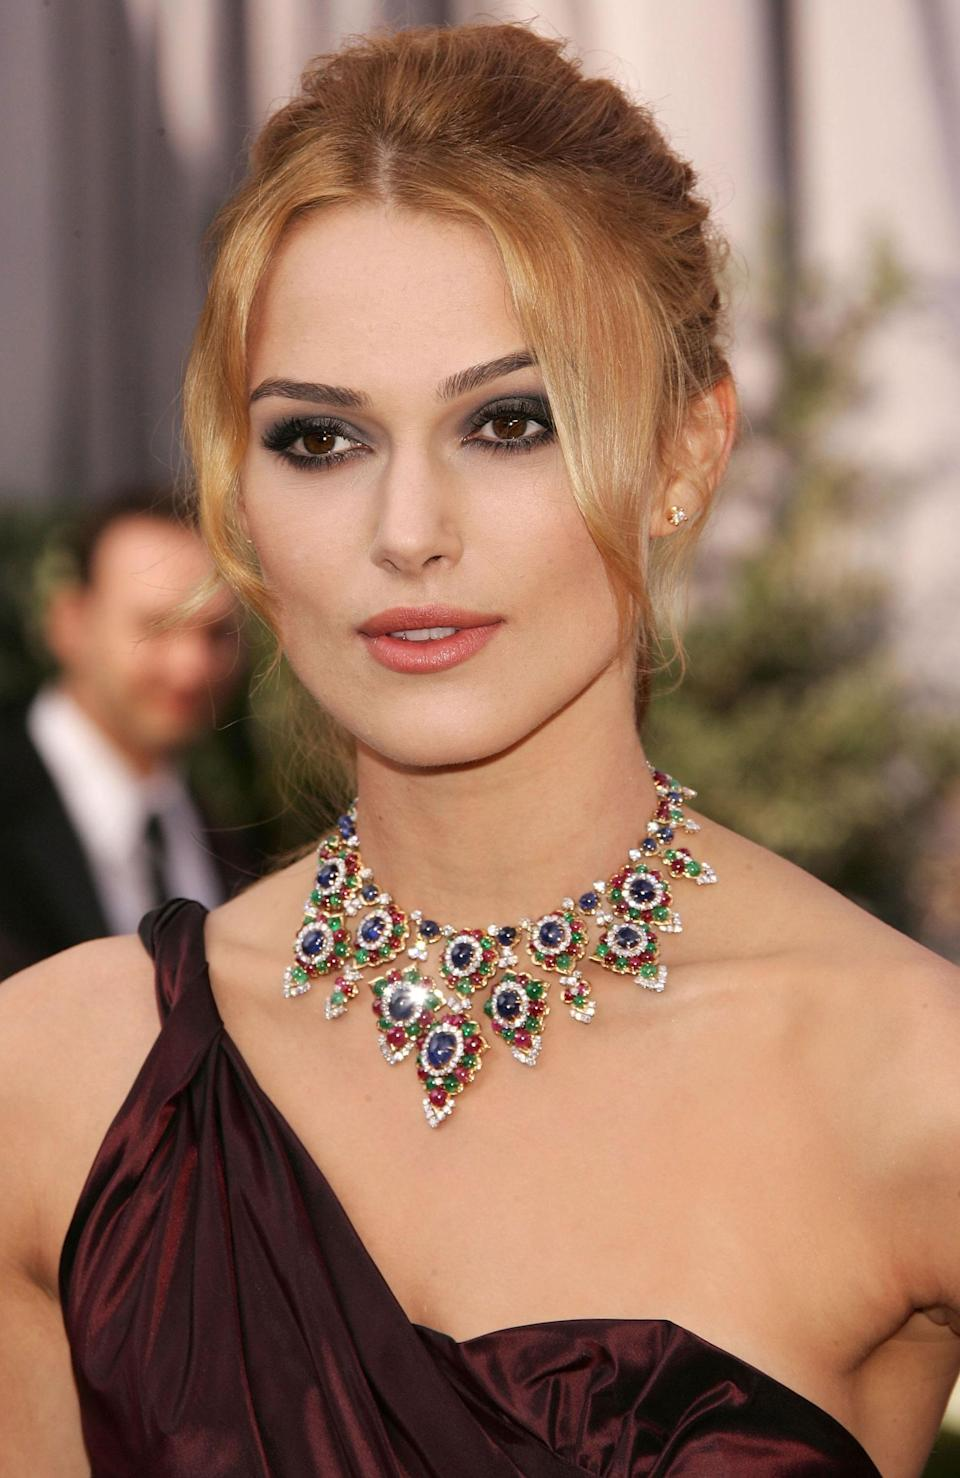 Great vintage always has a story, and the '60s-era Bulgari necklace that Keira Knightley chose for her first trip to the Oscars came with a royal pedigree. Owned initially by Princess Soraya of Iran, the intricate 18-carat yellow-gold choker detailed with sapphires, emeralds, and rubies is among the most striking to ever grace the ceremony.